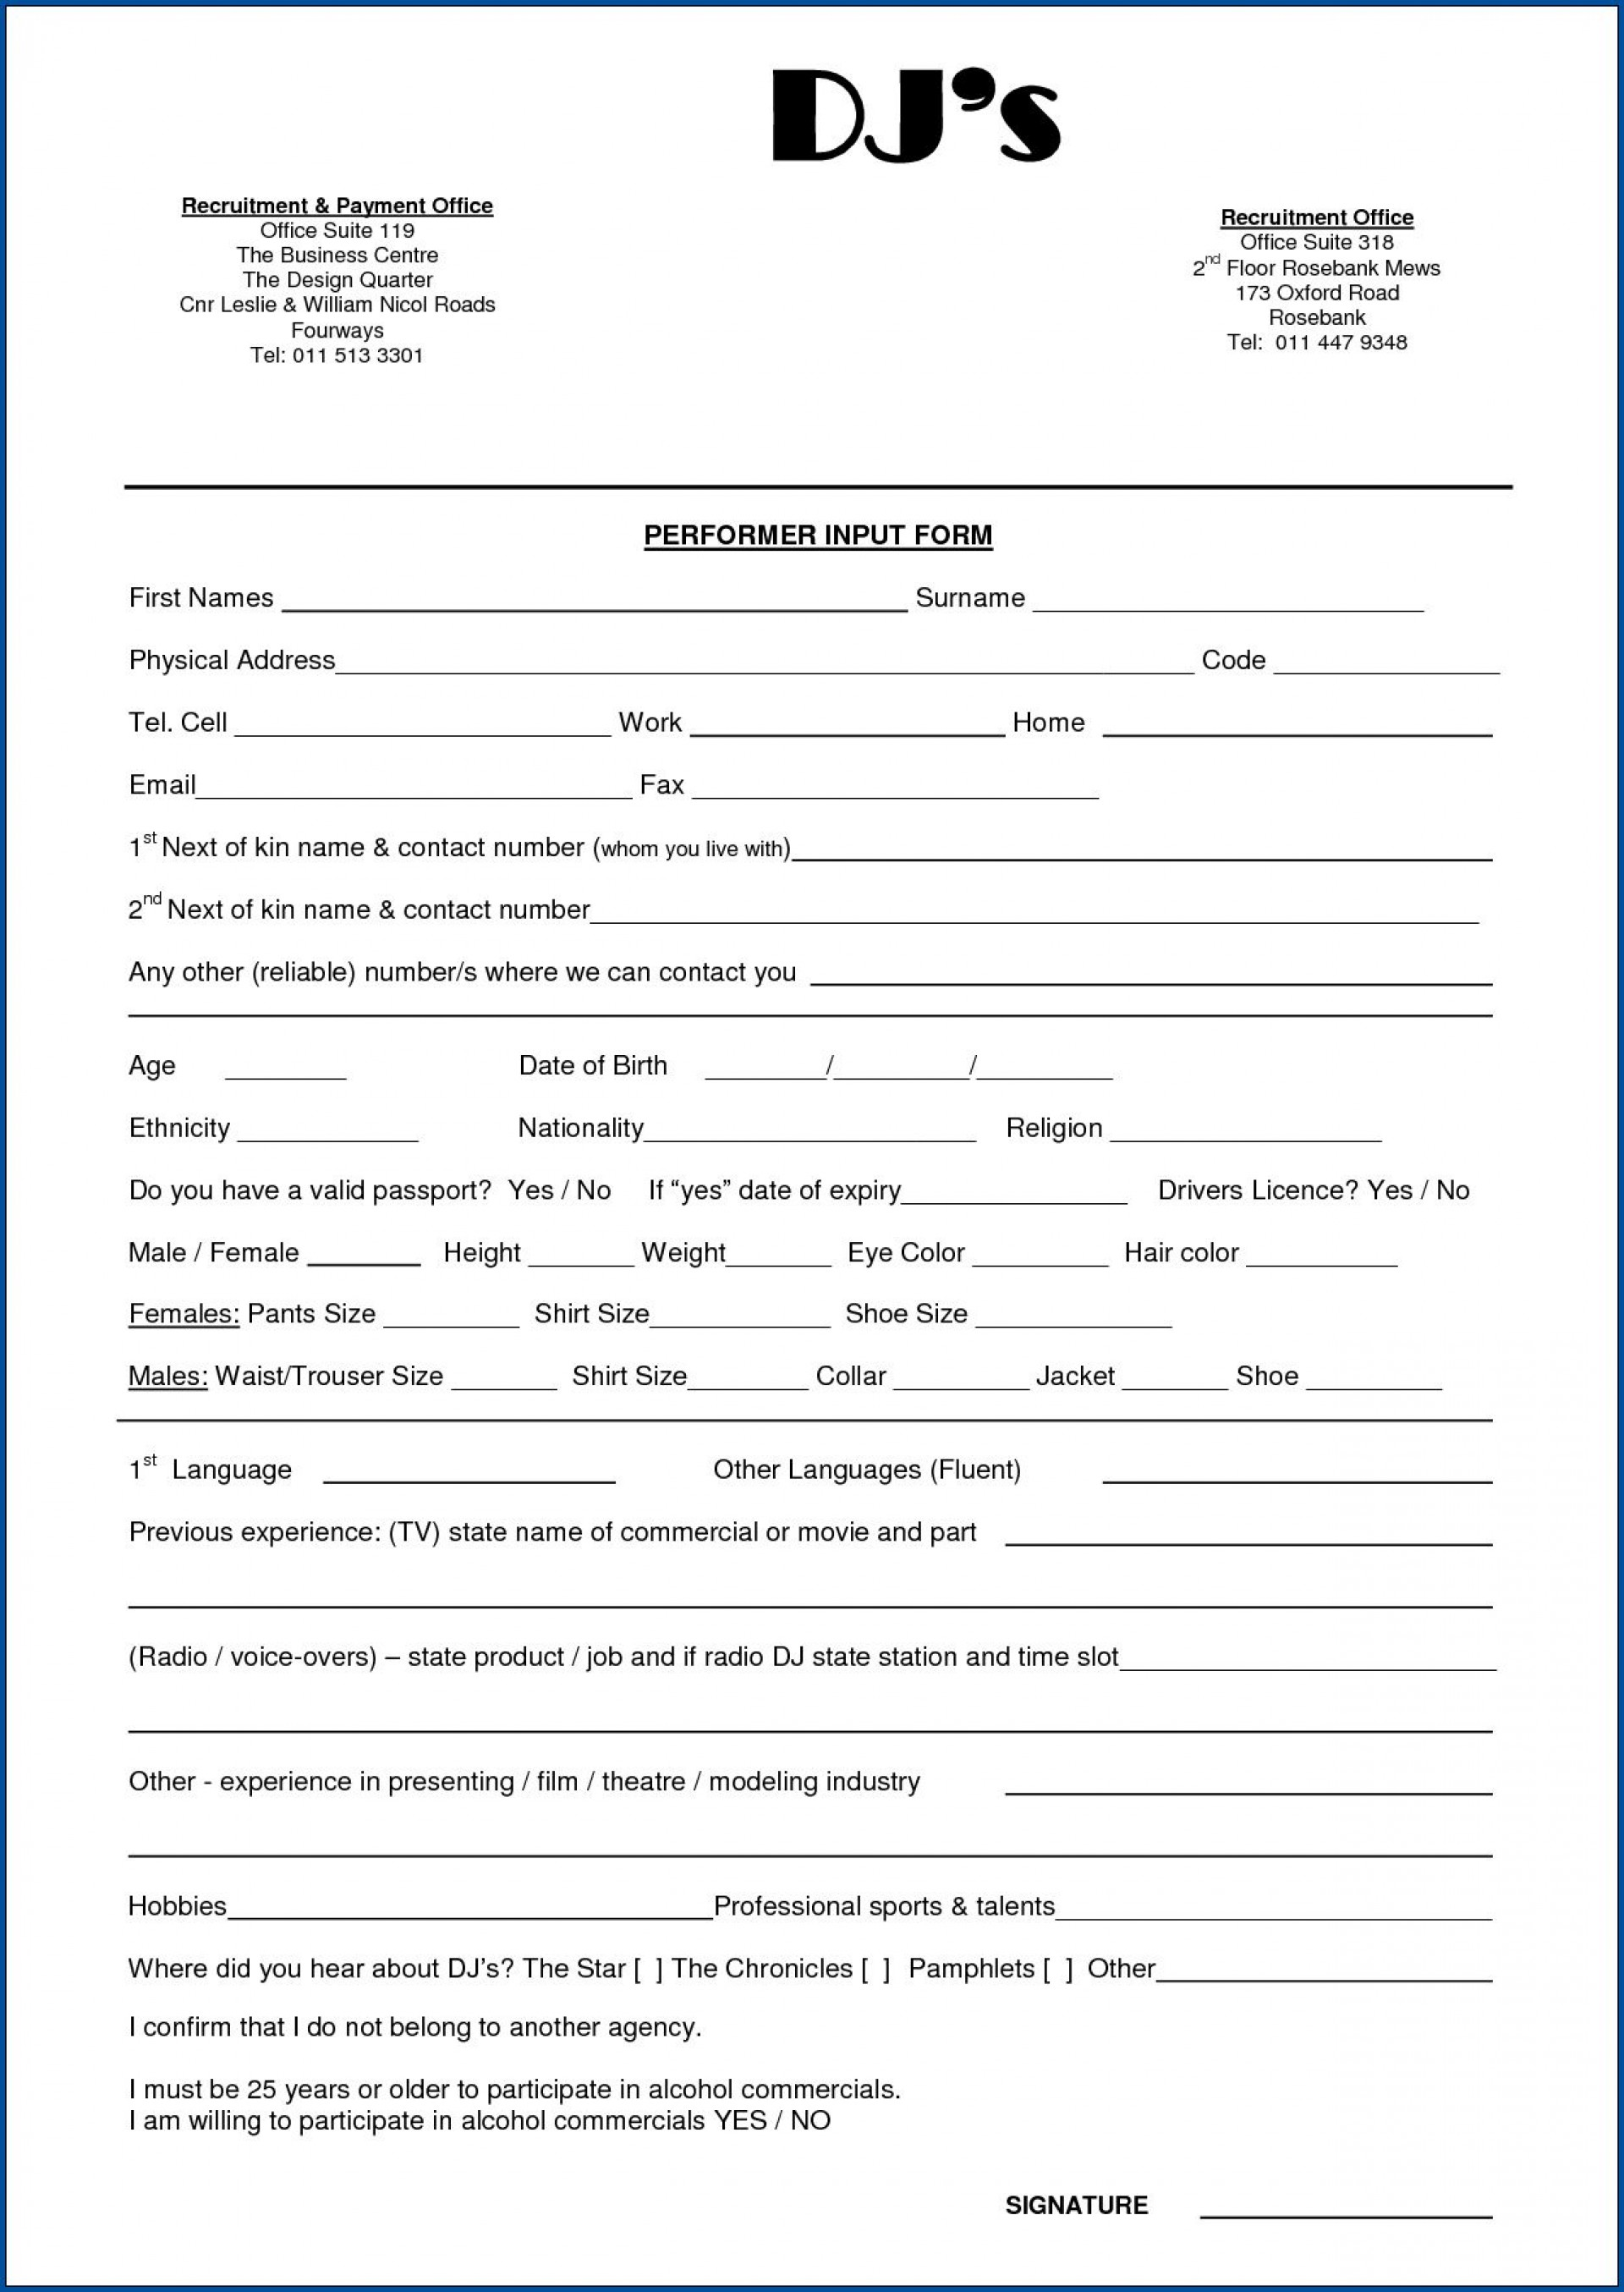 008 Magnificent Disc Jockey Contract Template Idea  Disk Free1920